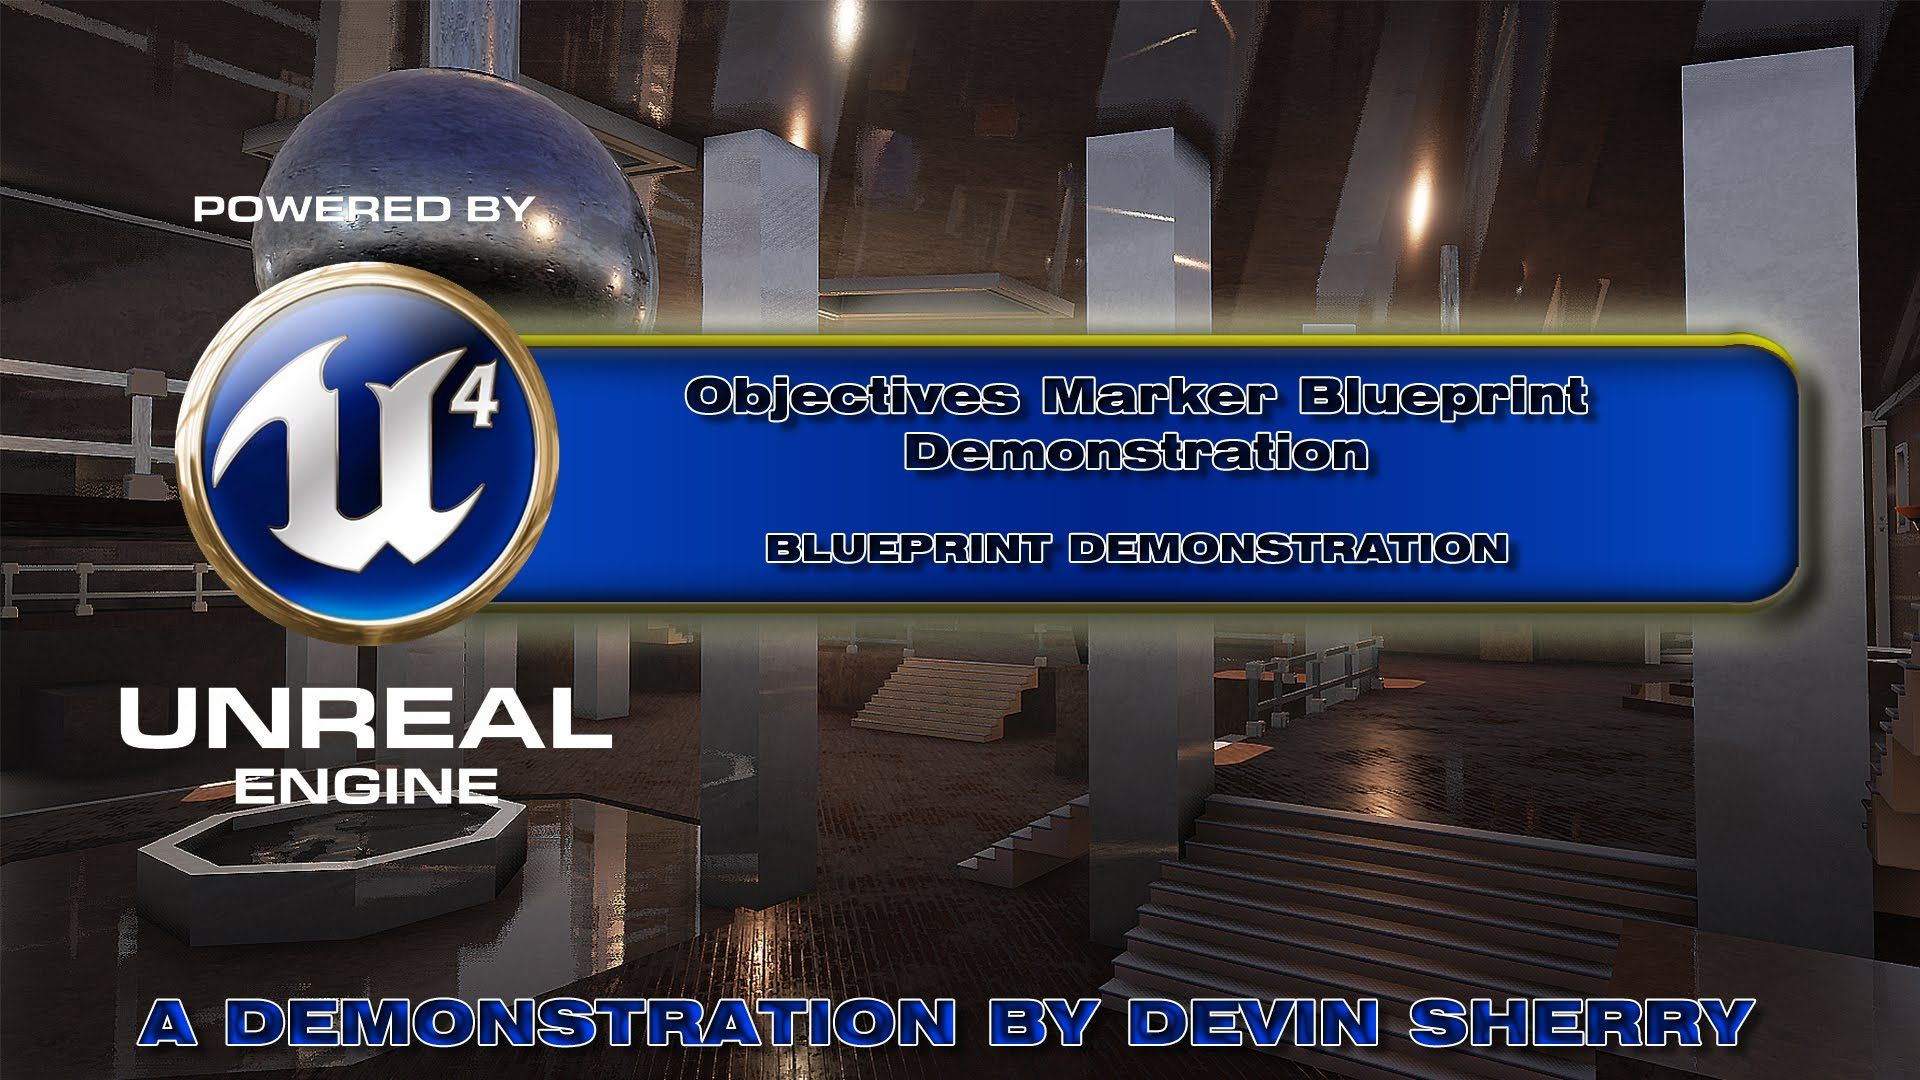 Ue4 objective markers 1 2 tracker blueprint full demonstration ue4 objective markers 1 2 tracker blueprint full demonstration by devin sherry malvernweather Gallery